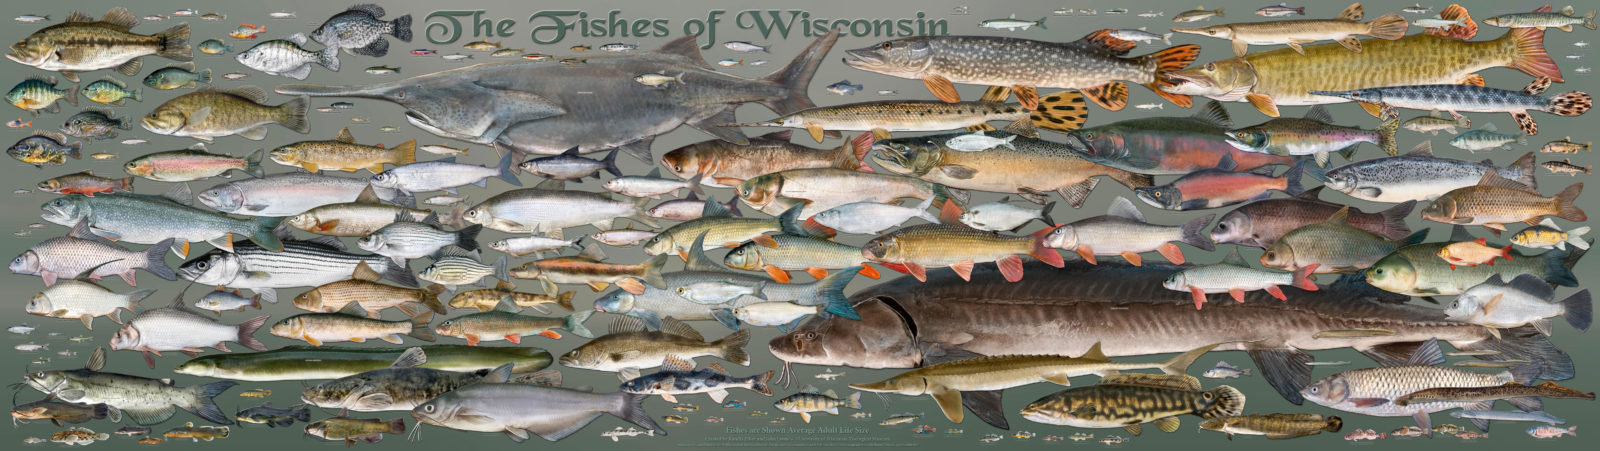 Fishes of Wisconsin